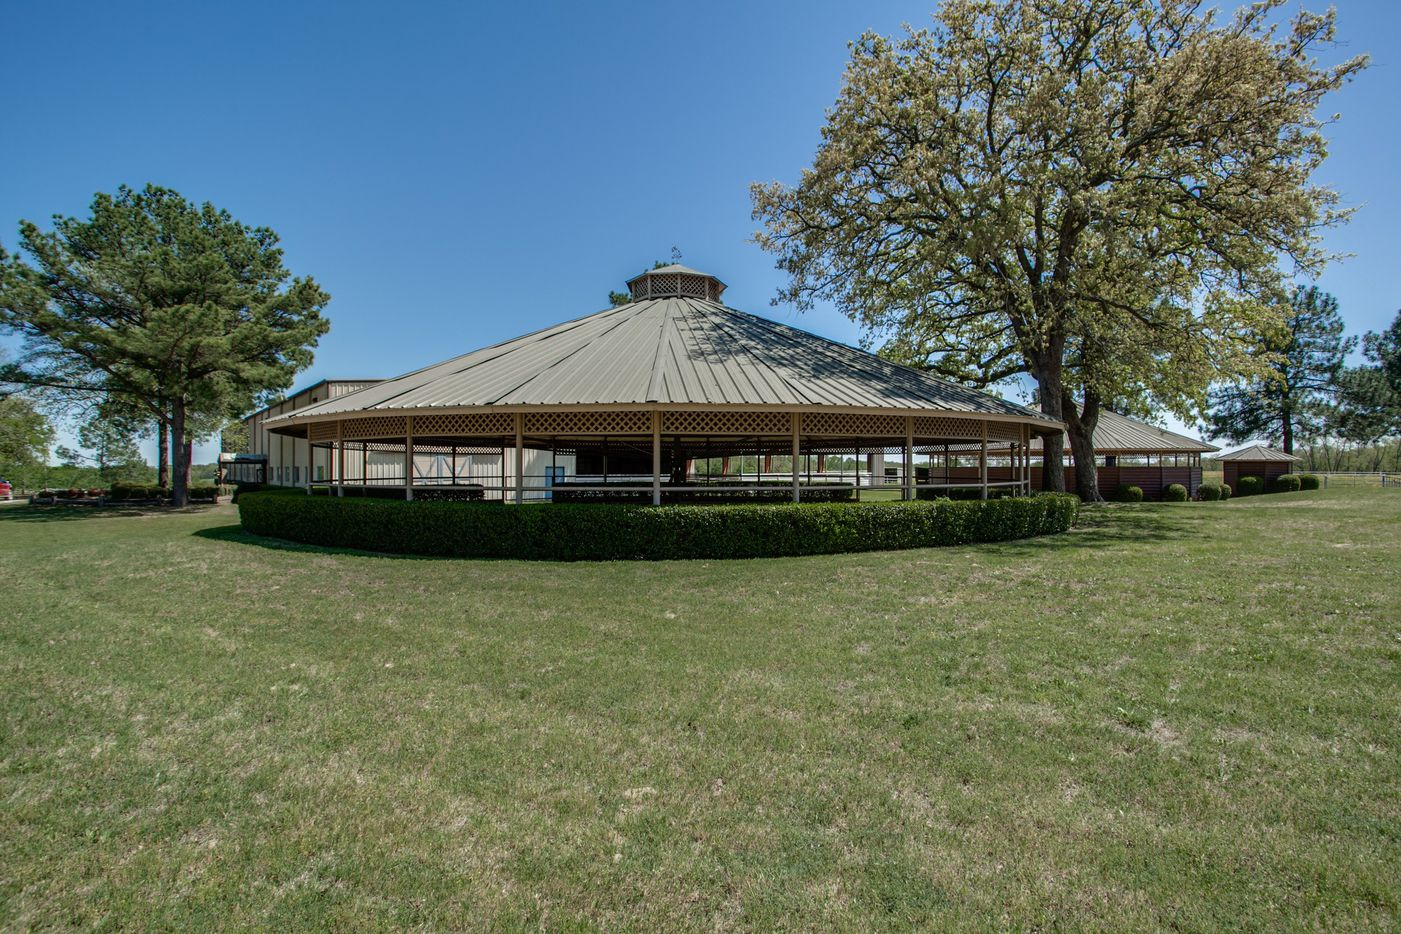 The property boasts a 32,000-square foot show barn and indoor arena.